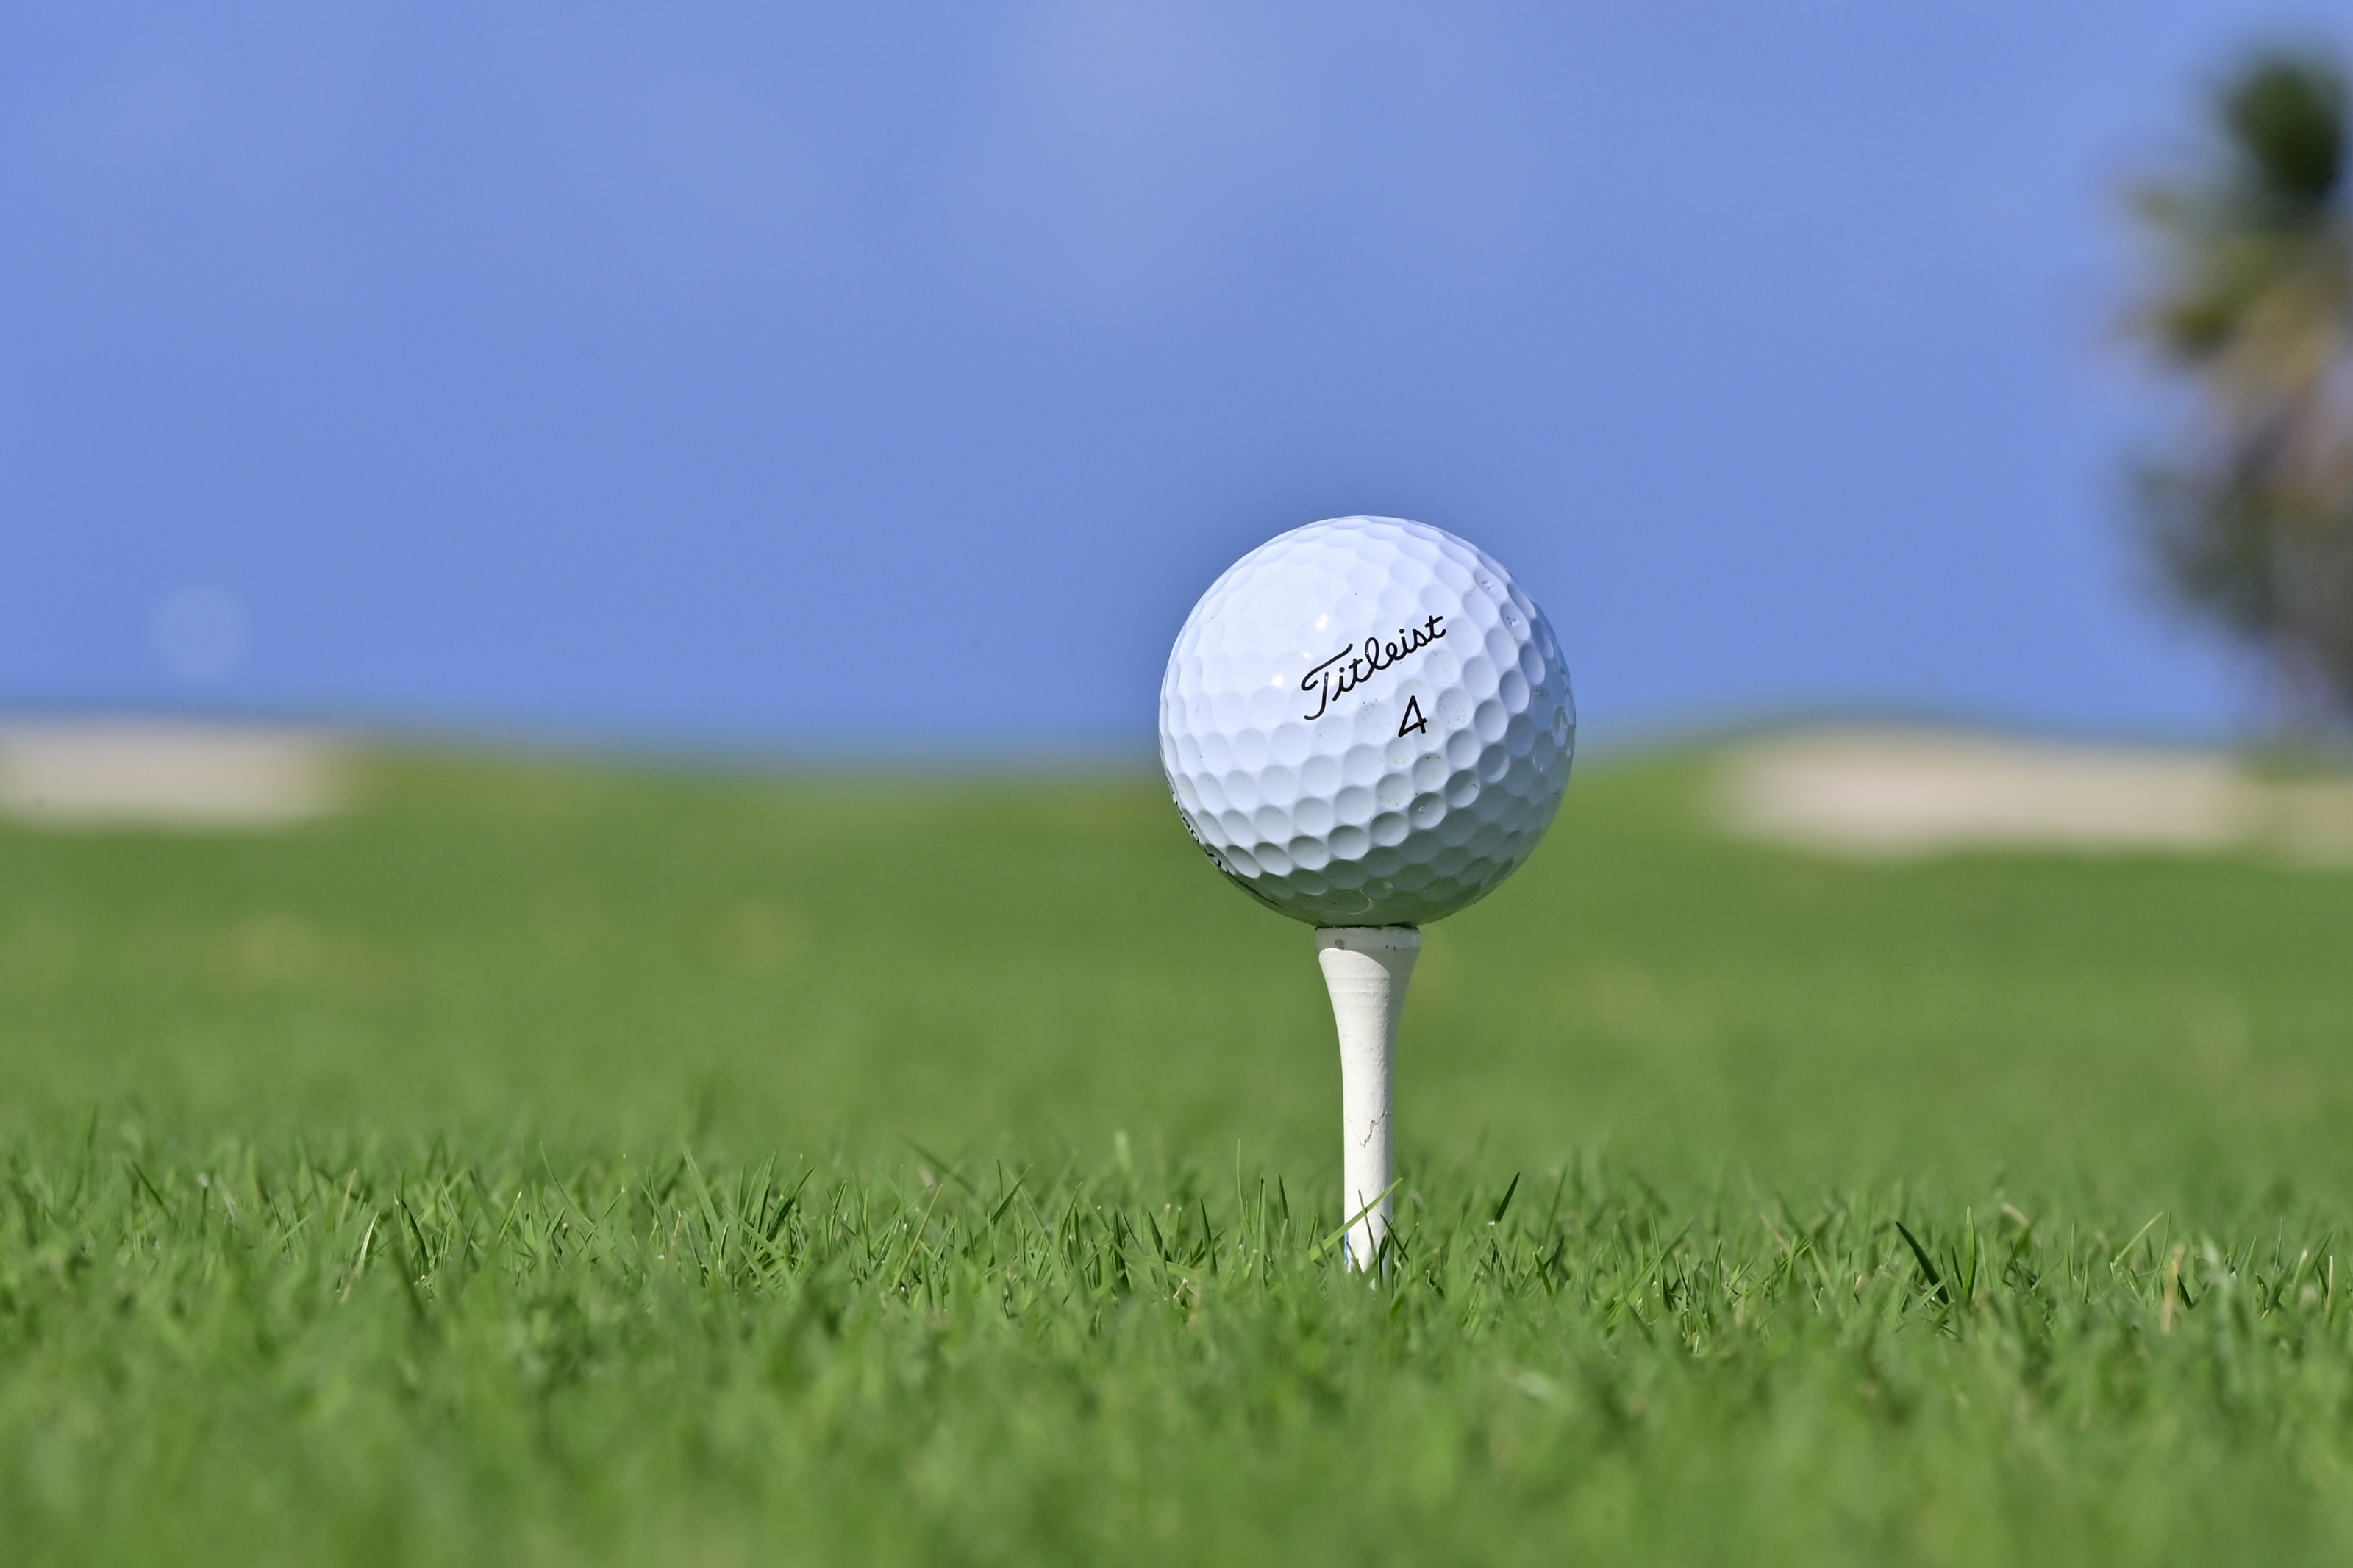 Acushnet introduces Union Green golf balls and takes a giant divot